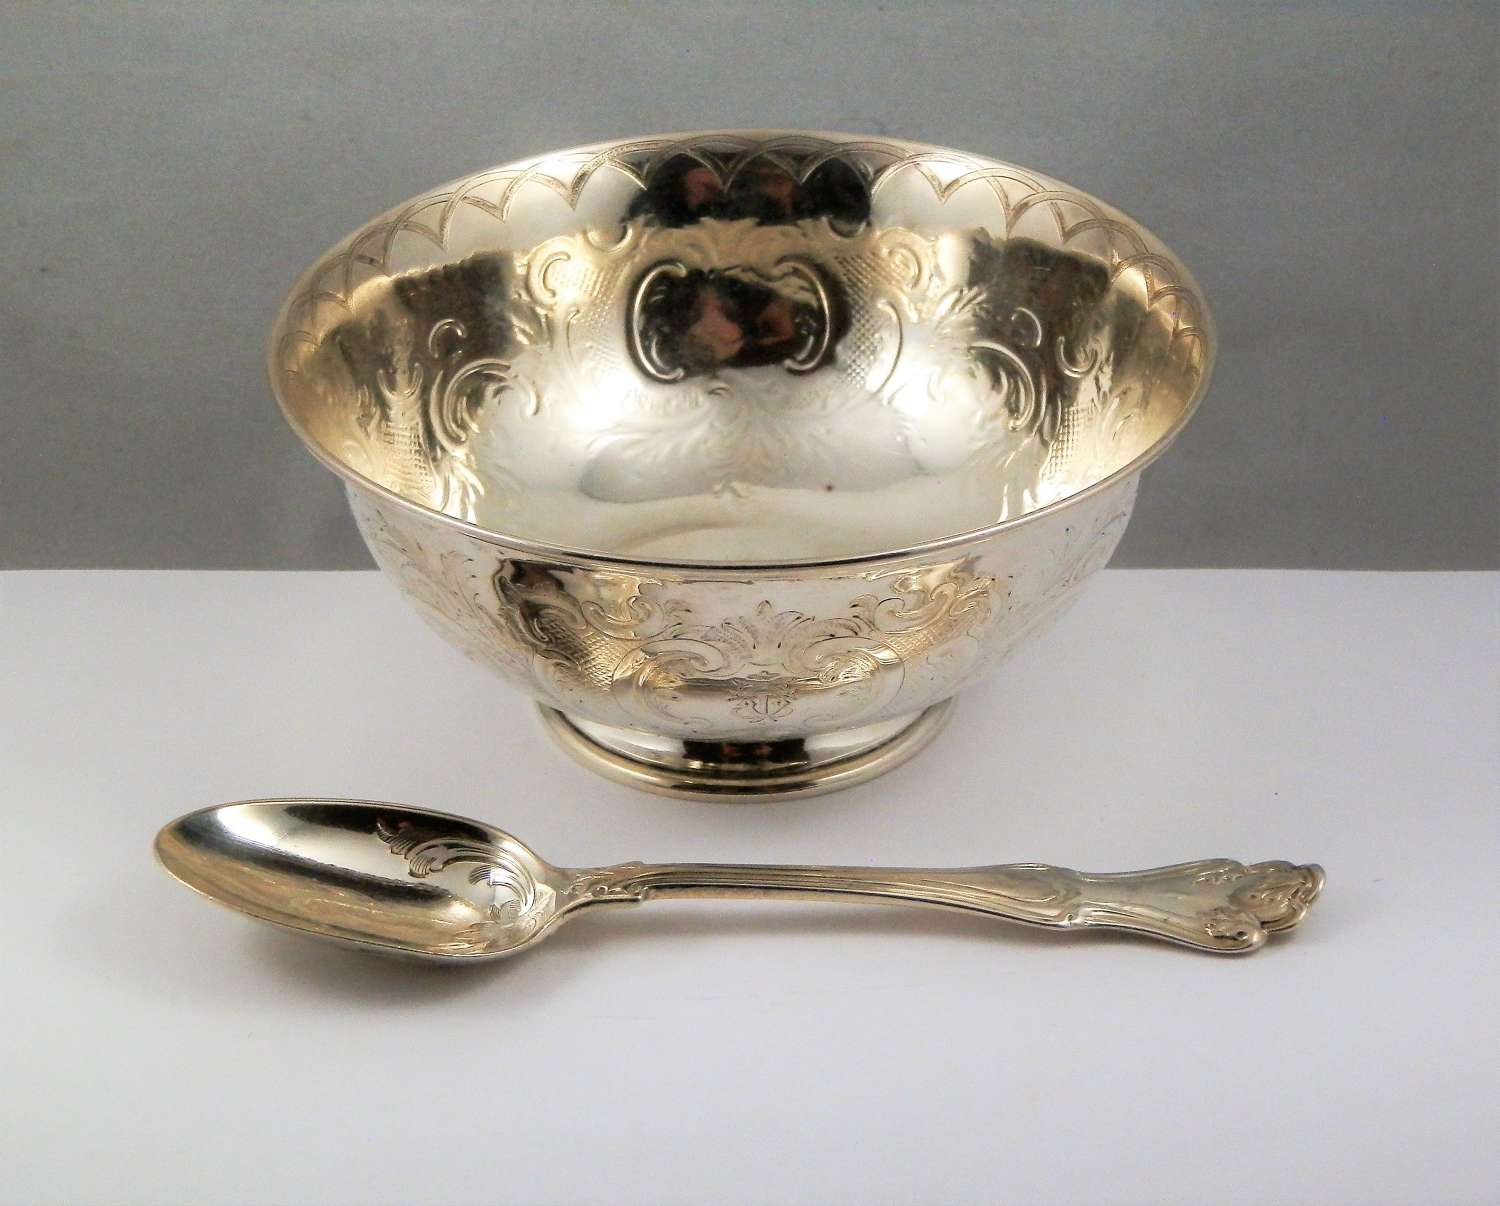 Victorian cased silver bowl and spoon, London 1852